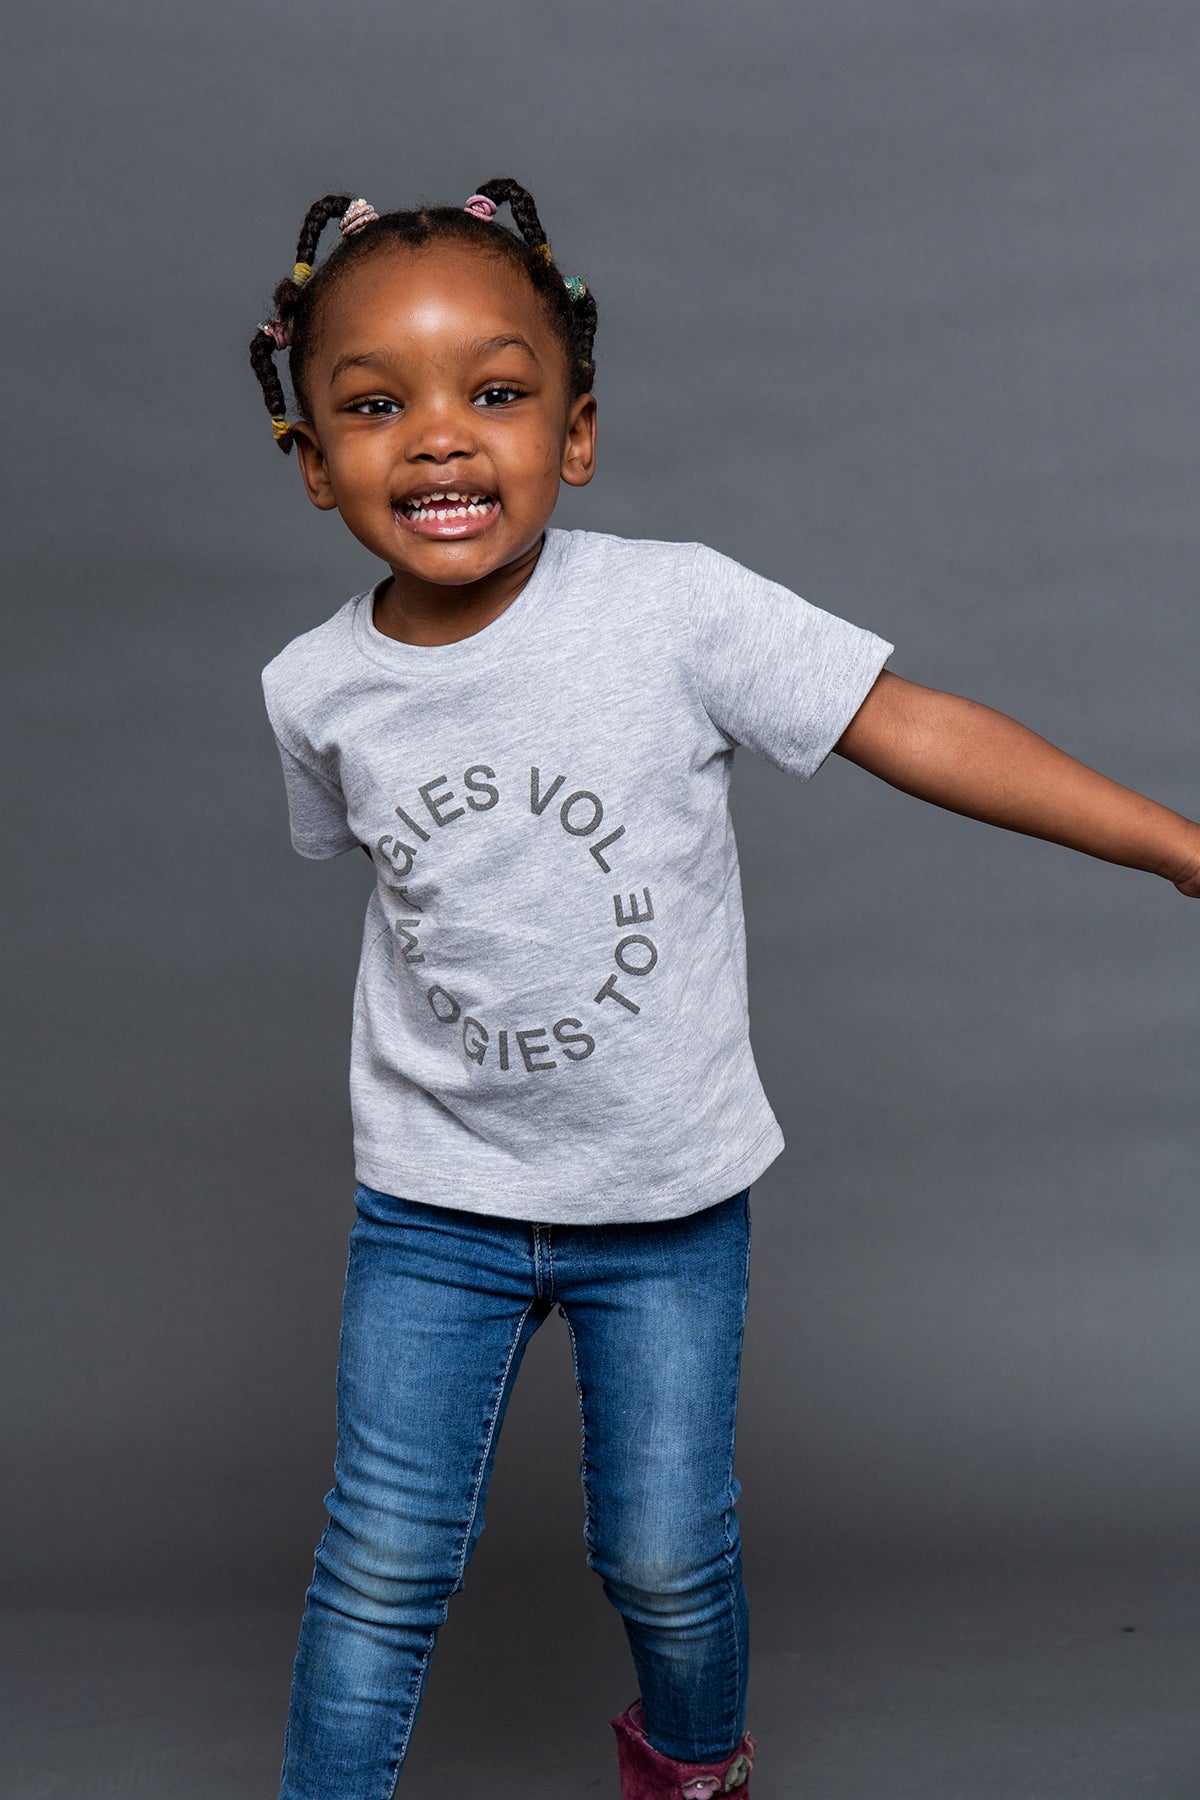 MAGIES VOL, OGIES TOE KIDS TEE